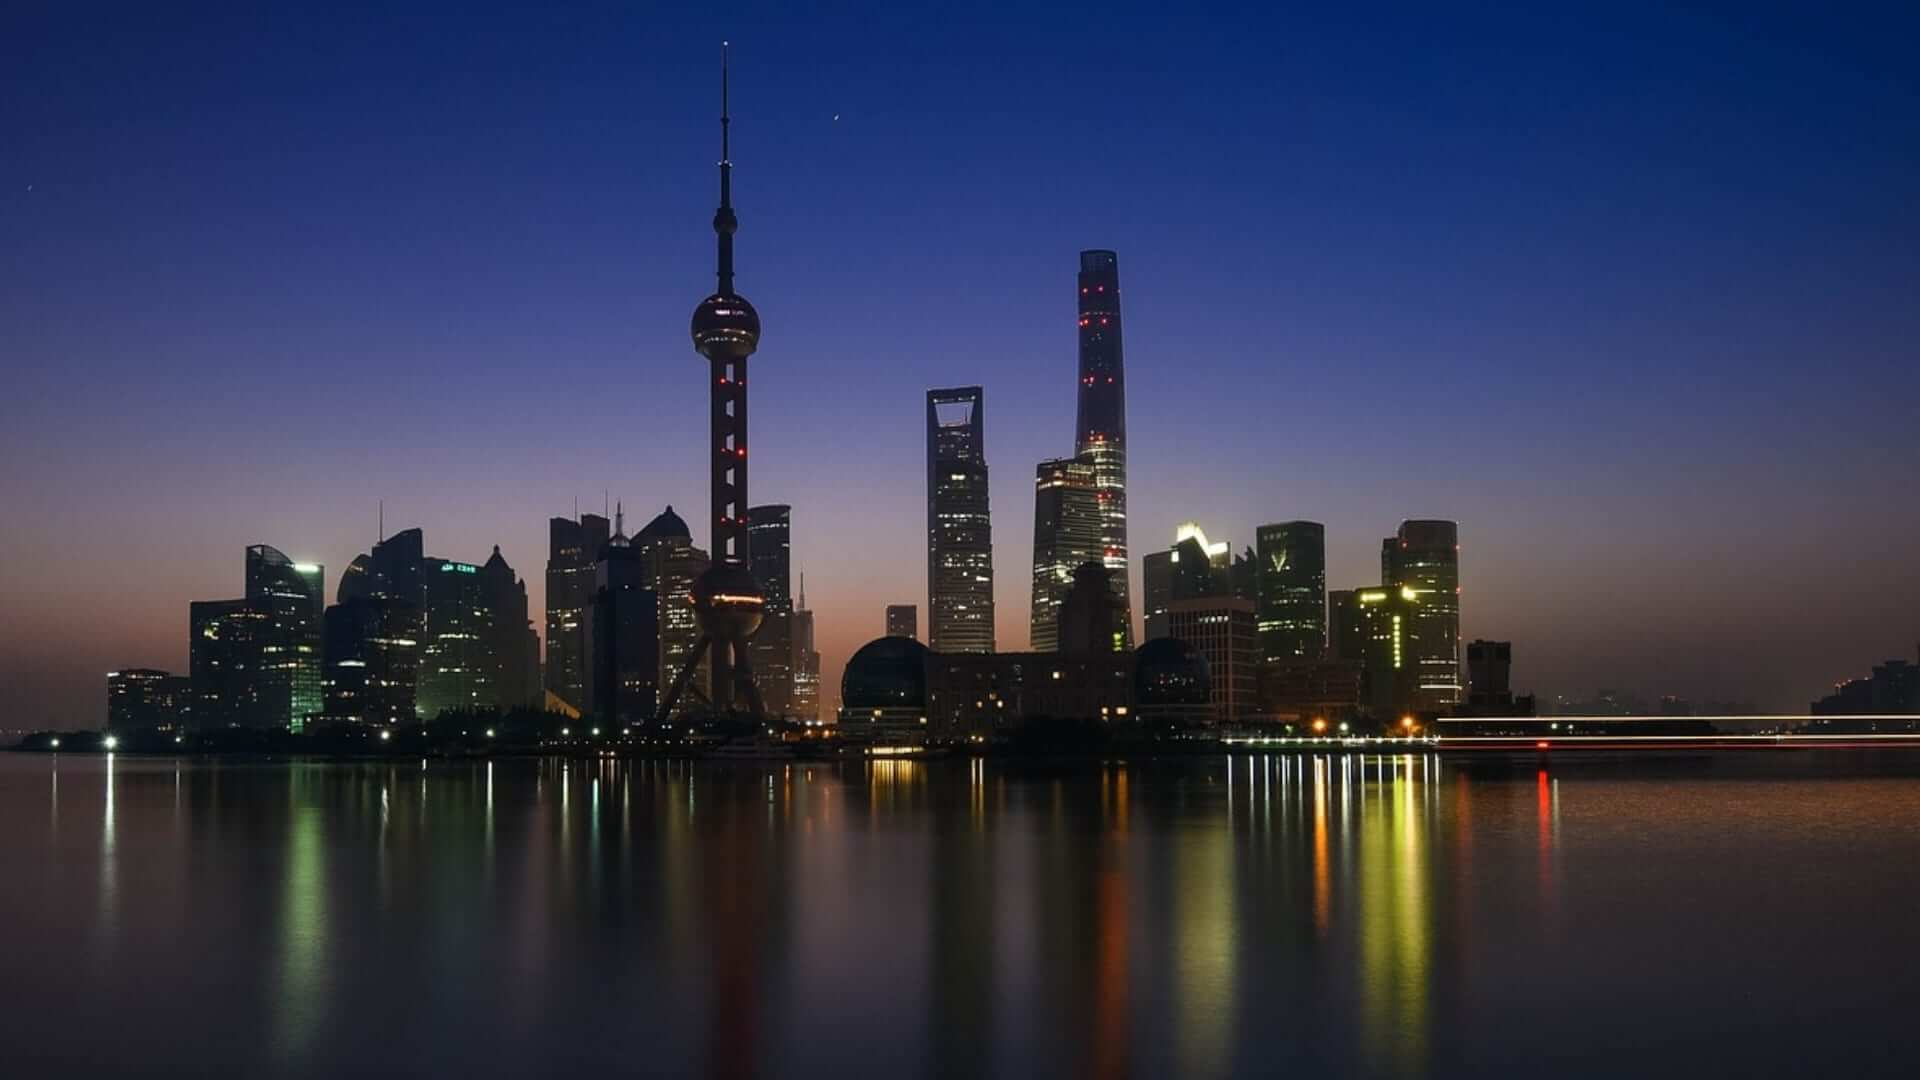 Illuminated buildings are reflecting on water during night in Shanghai.